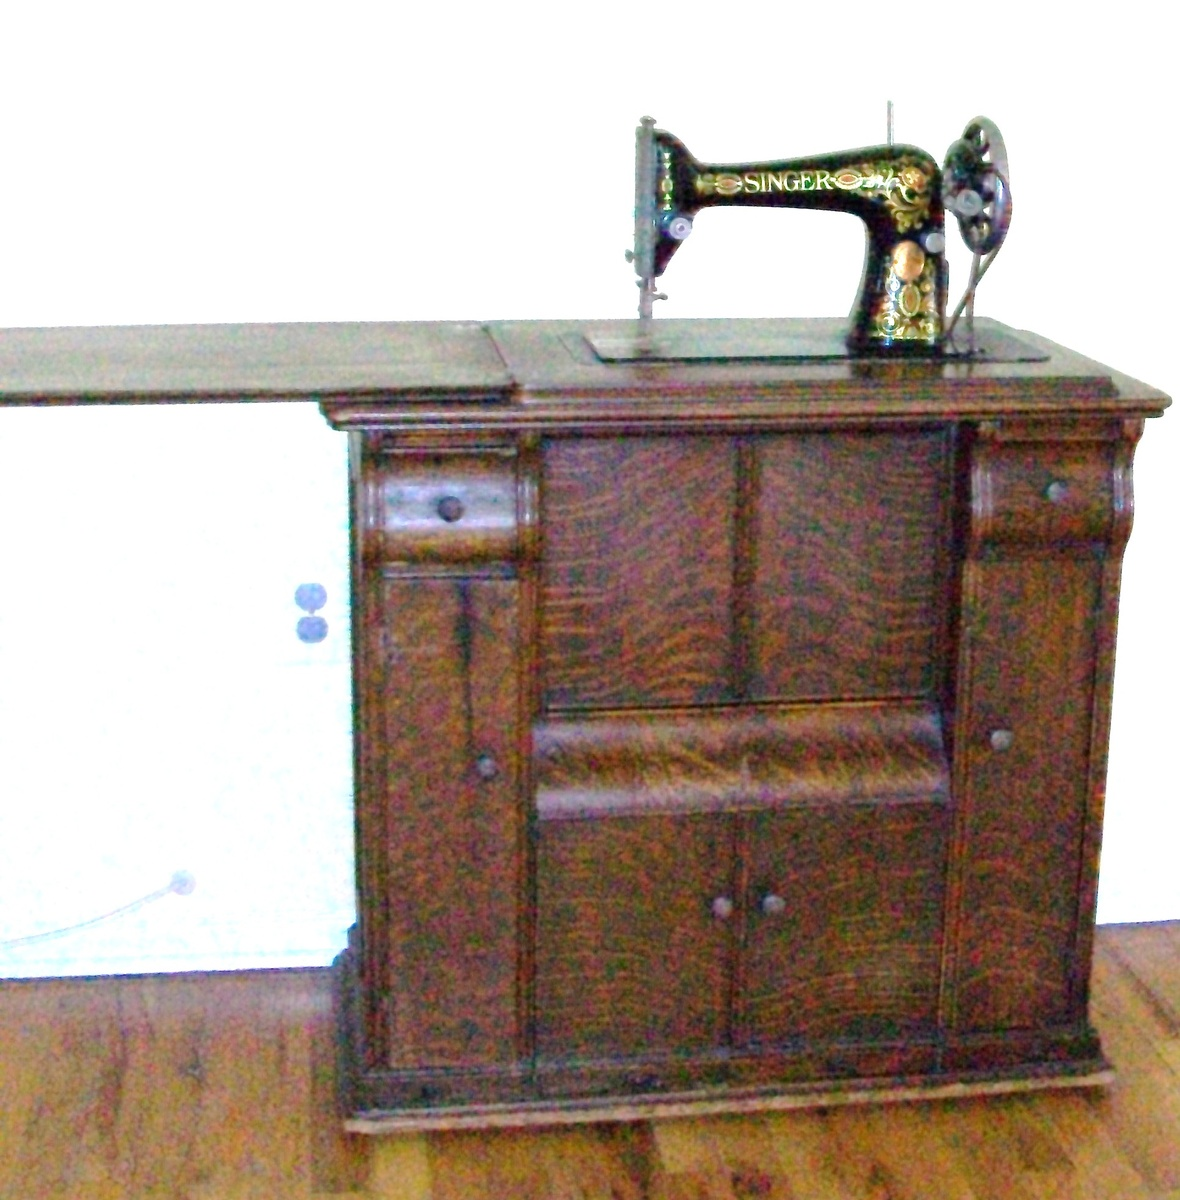 1910 working singer sewing machine with original wooden case rh collectorsweekly com vintage singer sewing machine in wooden cabinet old singer sewing machine in wood cabinet